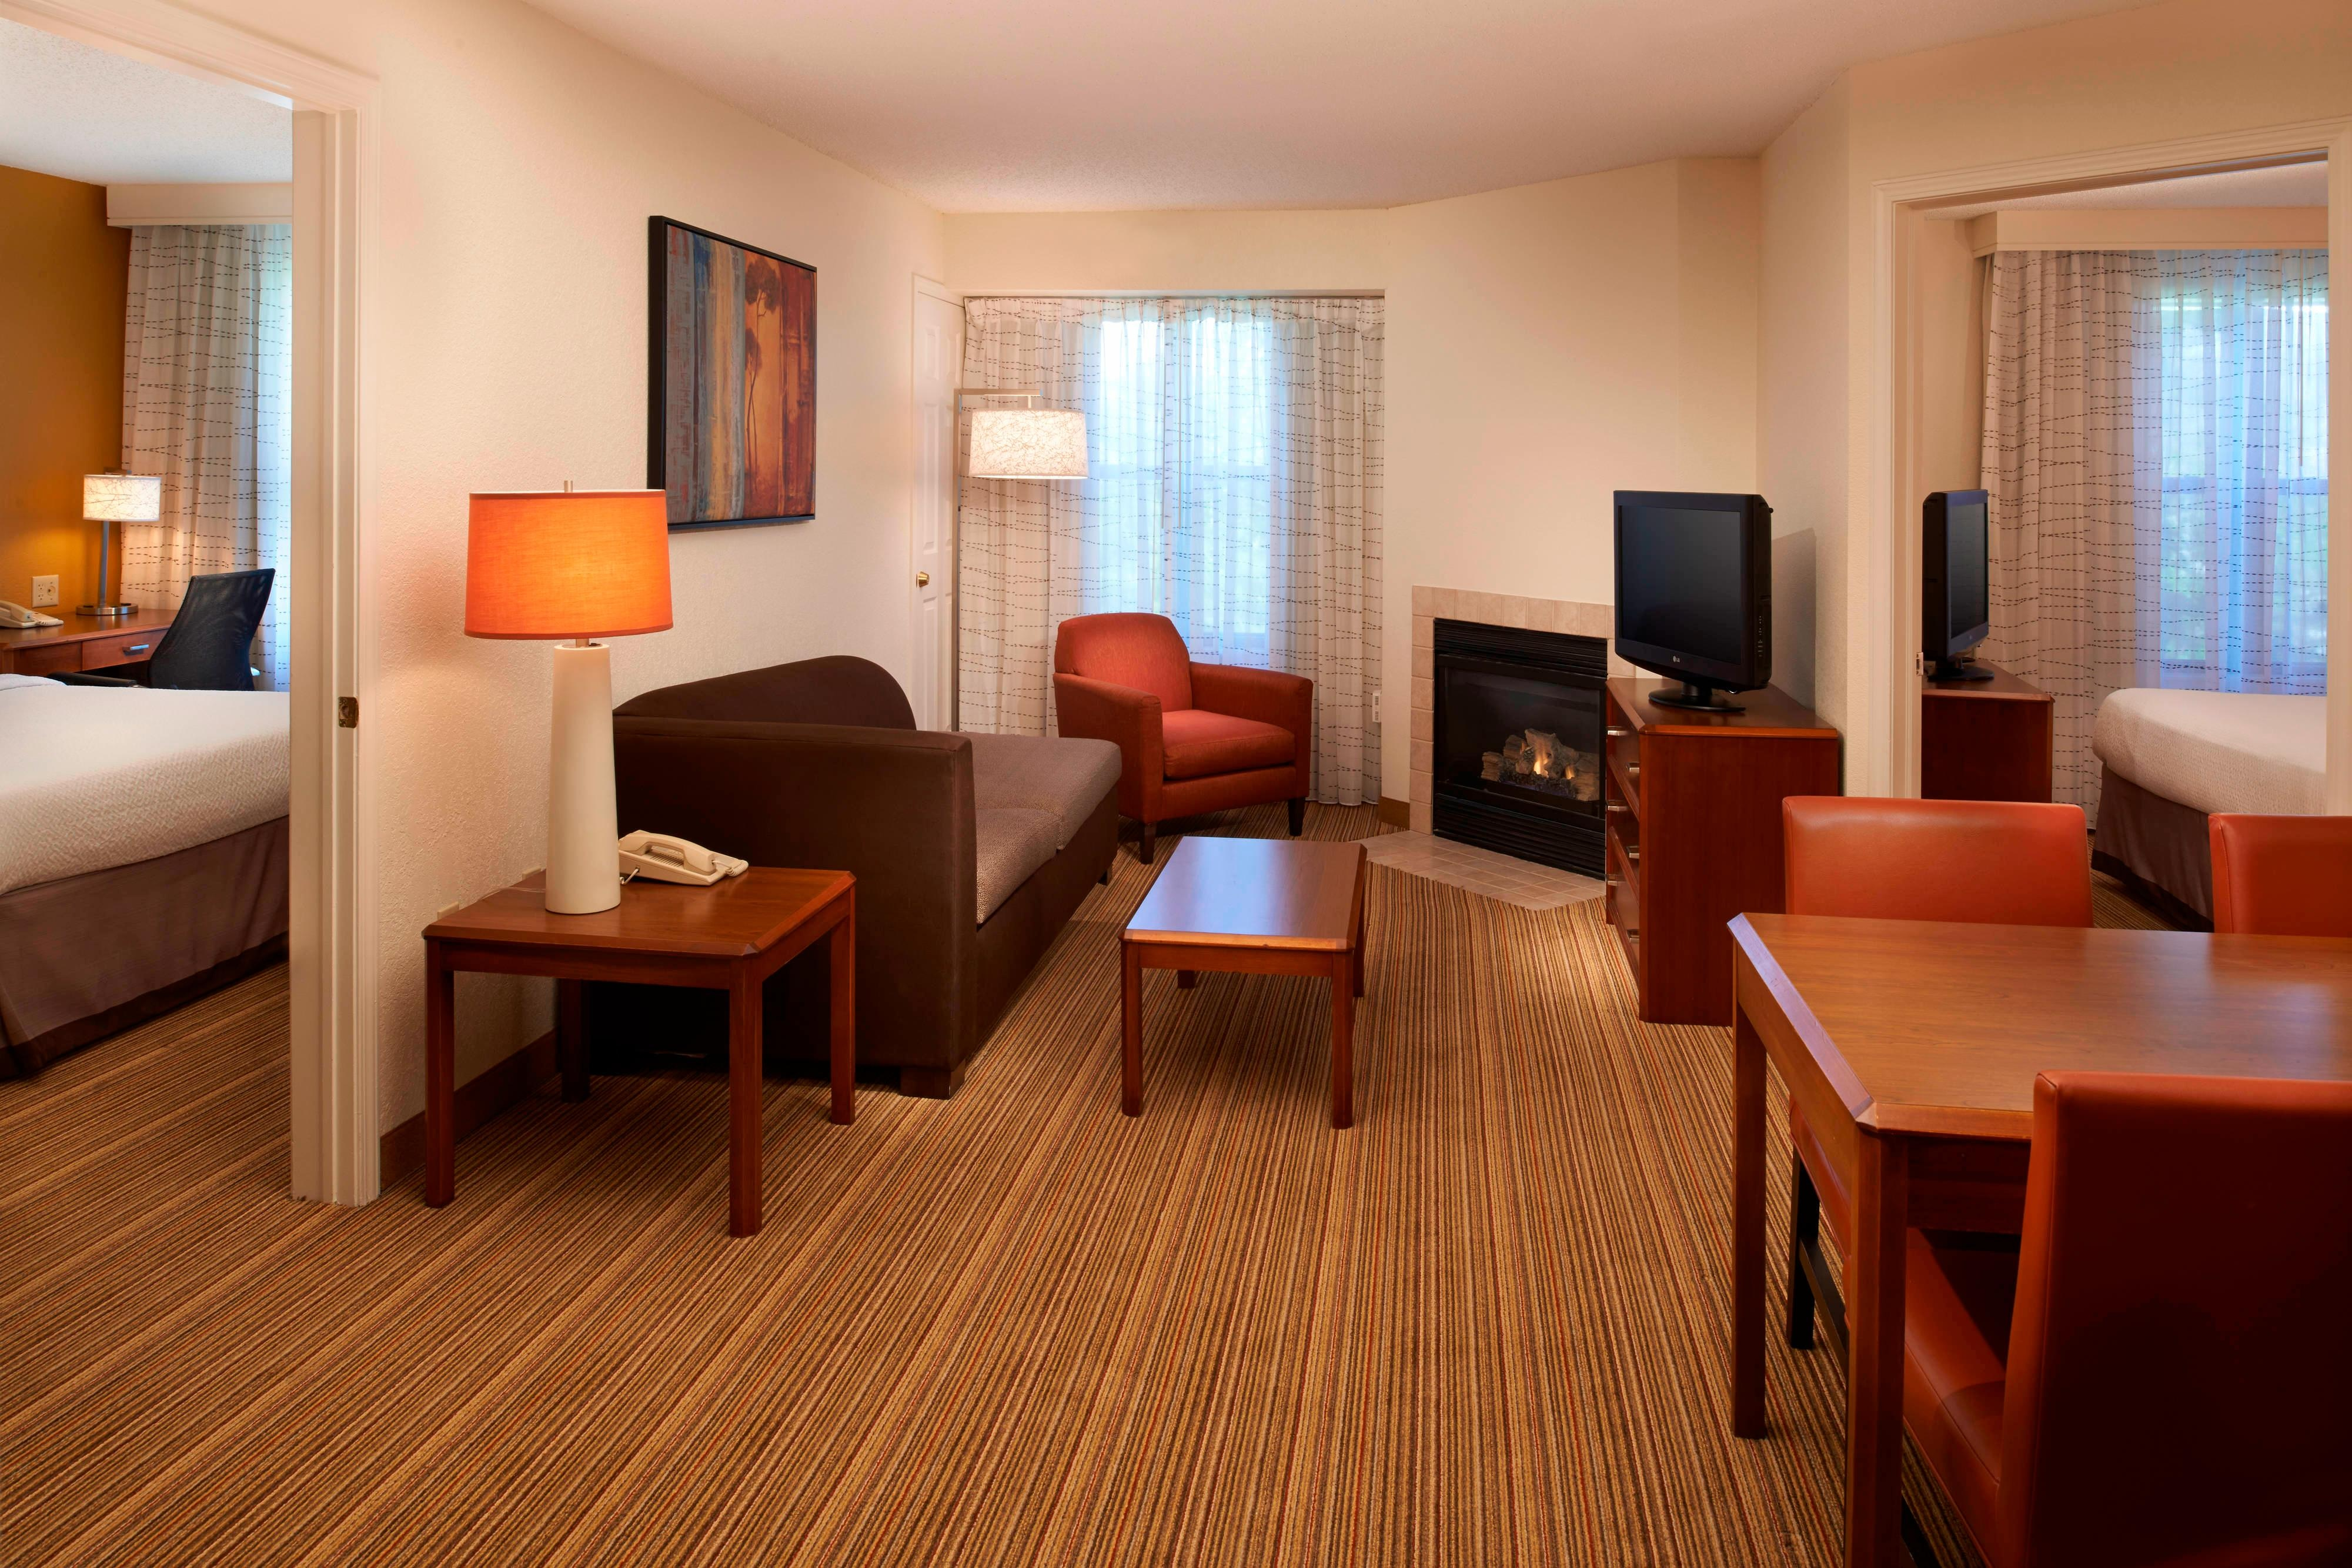 Hotel suites in gurnee il residence inn chicago waukegan gurnee for Two bedroom suites in chicago